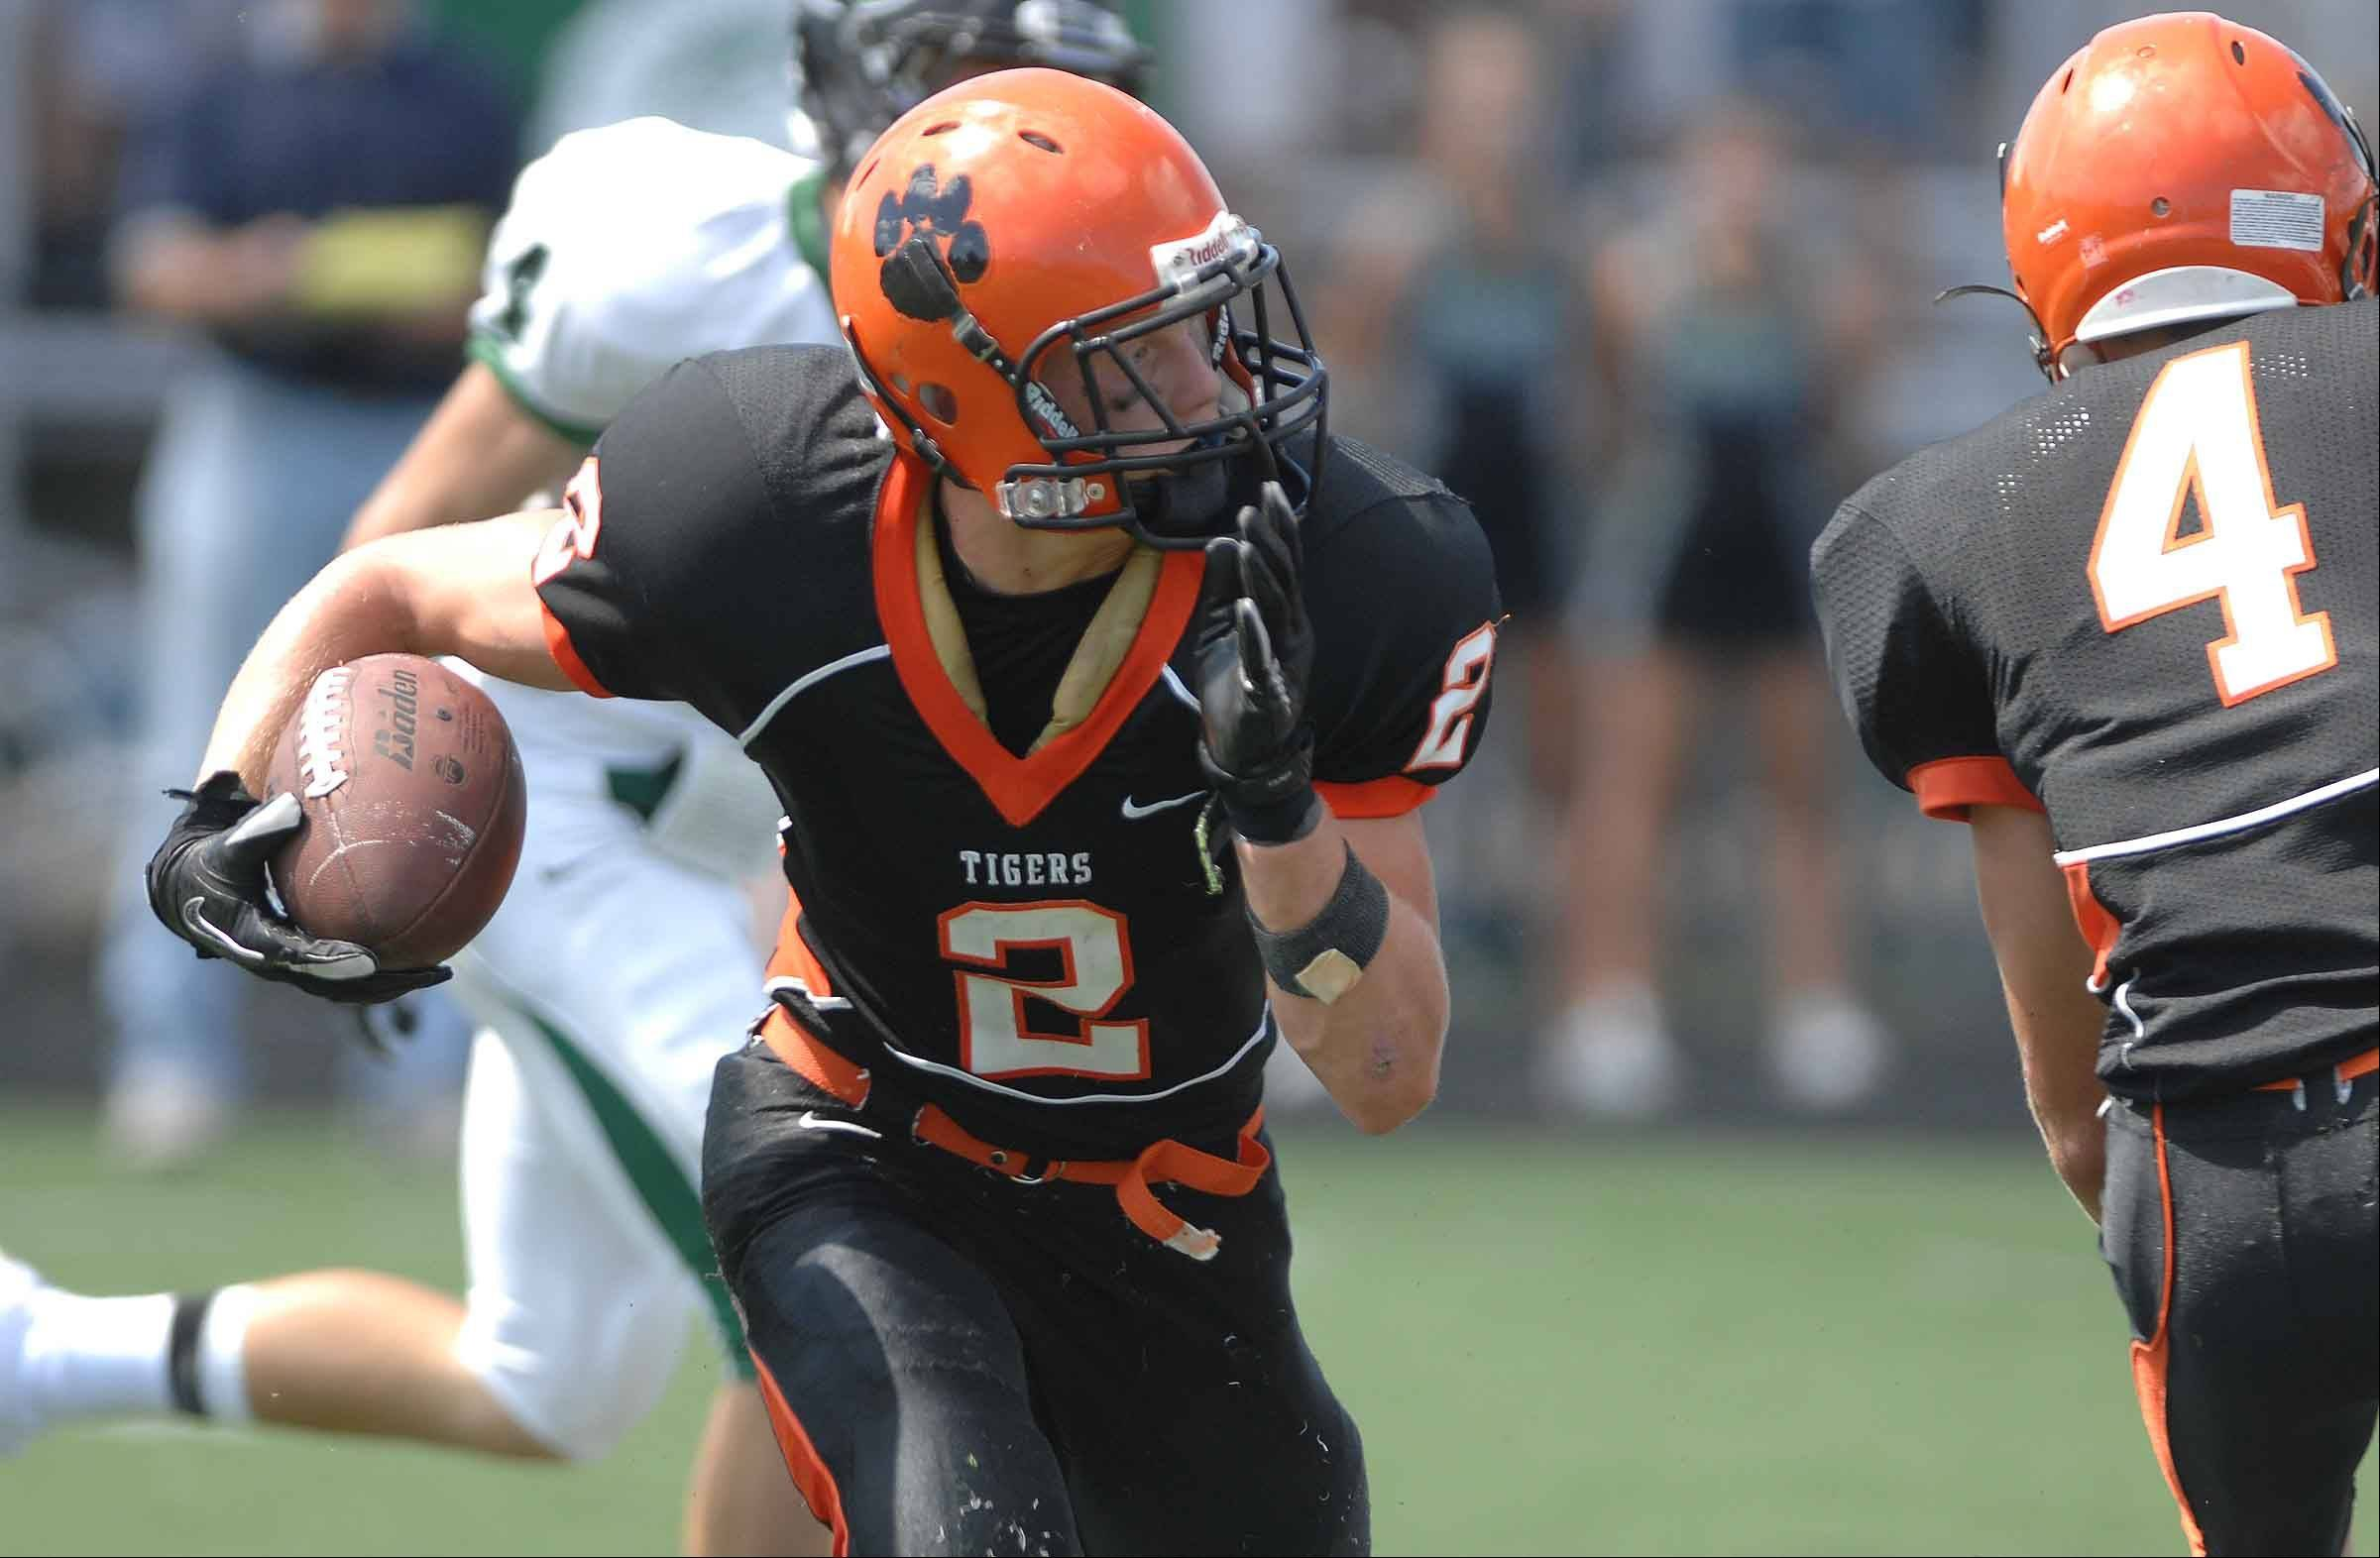 Mike Shelton of Wheaton moves the ball during the Glenbard West and Wheaton Warrenville South game Sunday.